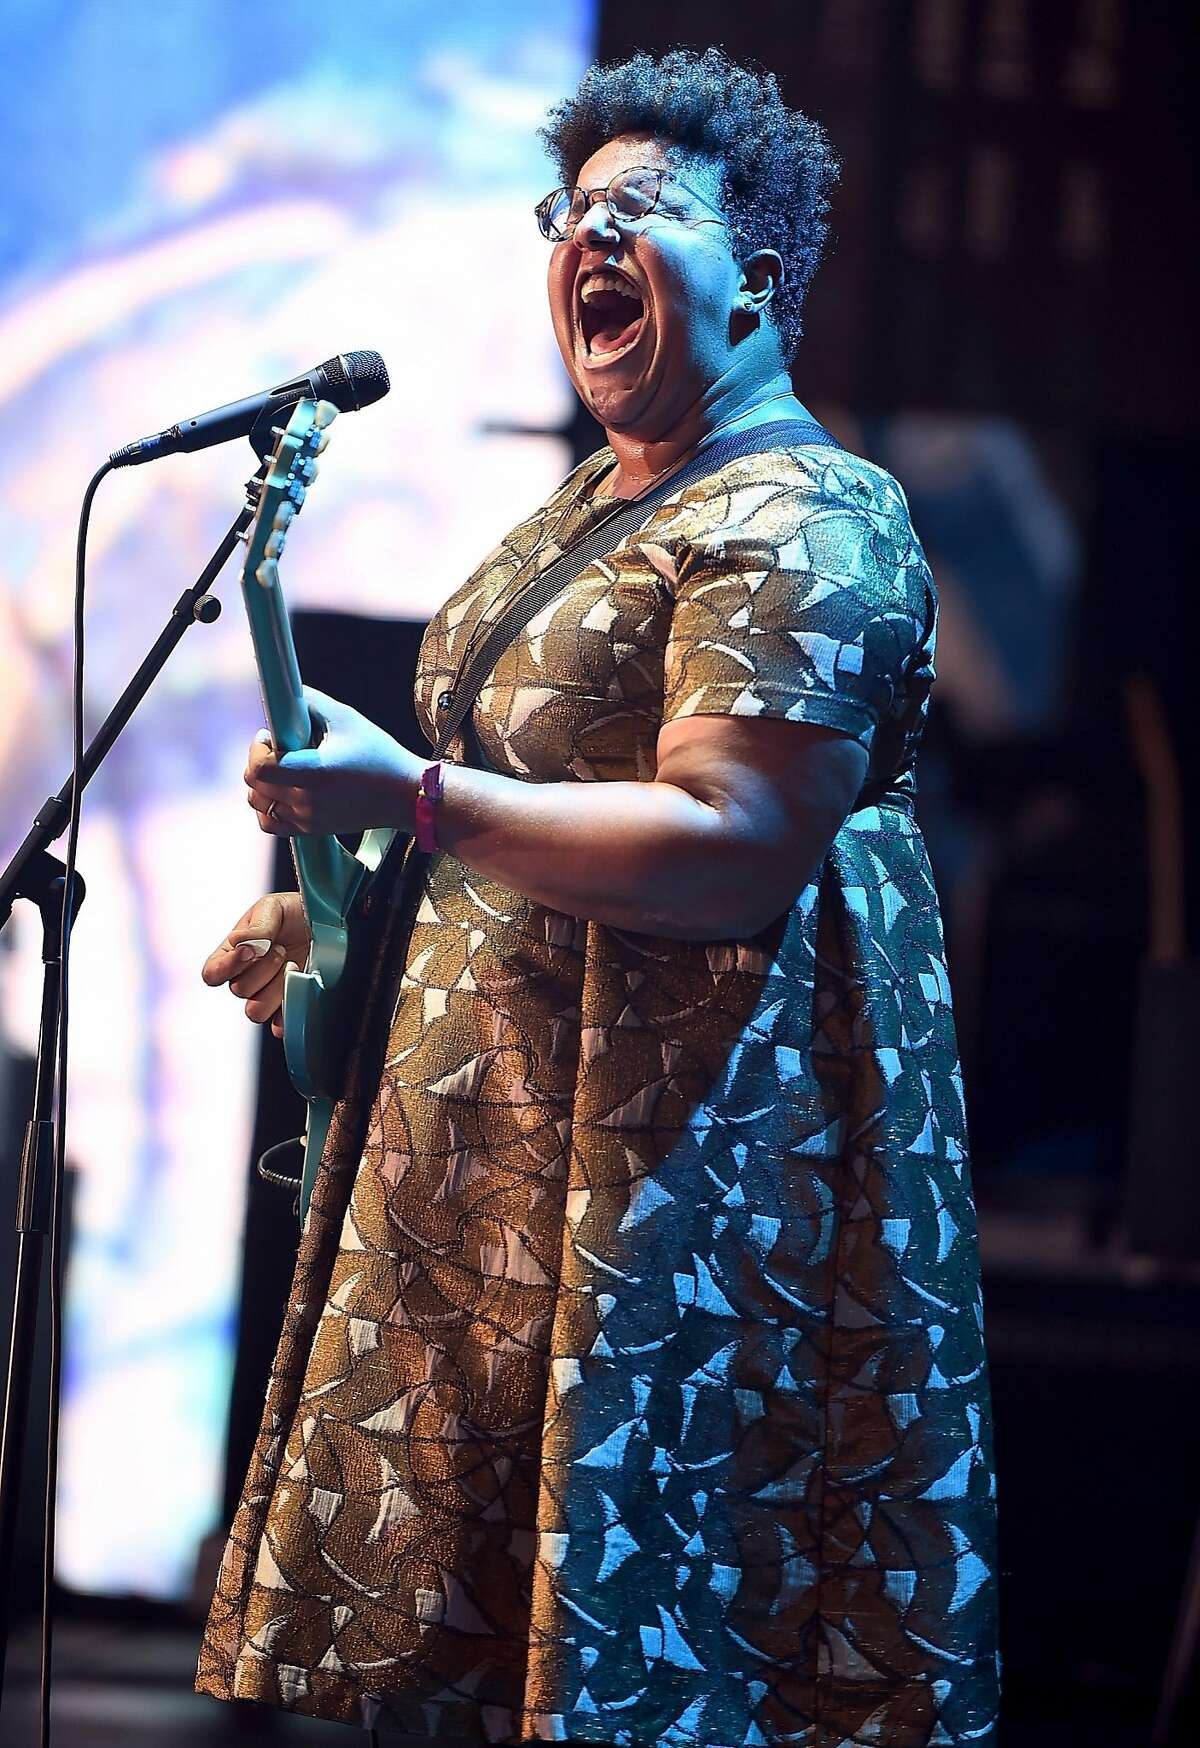 NEW YORK, NY - JULY 22: Brittany Howard of the Alabama Shakes performs onstage at the 2016 Panorama NYC Festival - Day 1 at Randall's Island on July 22, 2016 in New York City. (Photo by Theo Wargo/Getty Images)